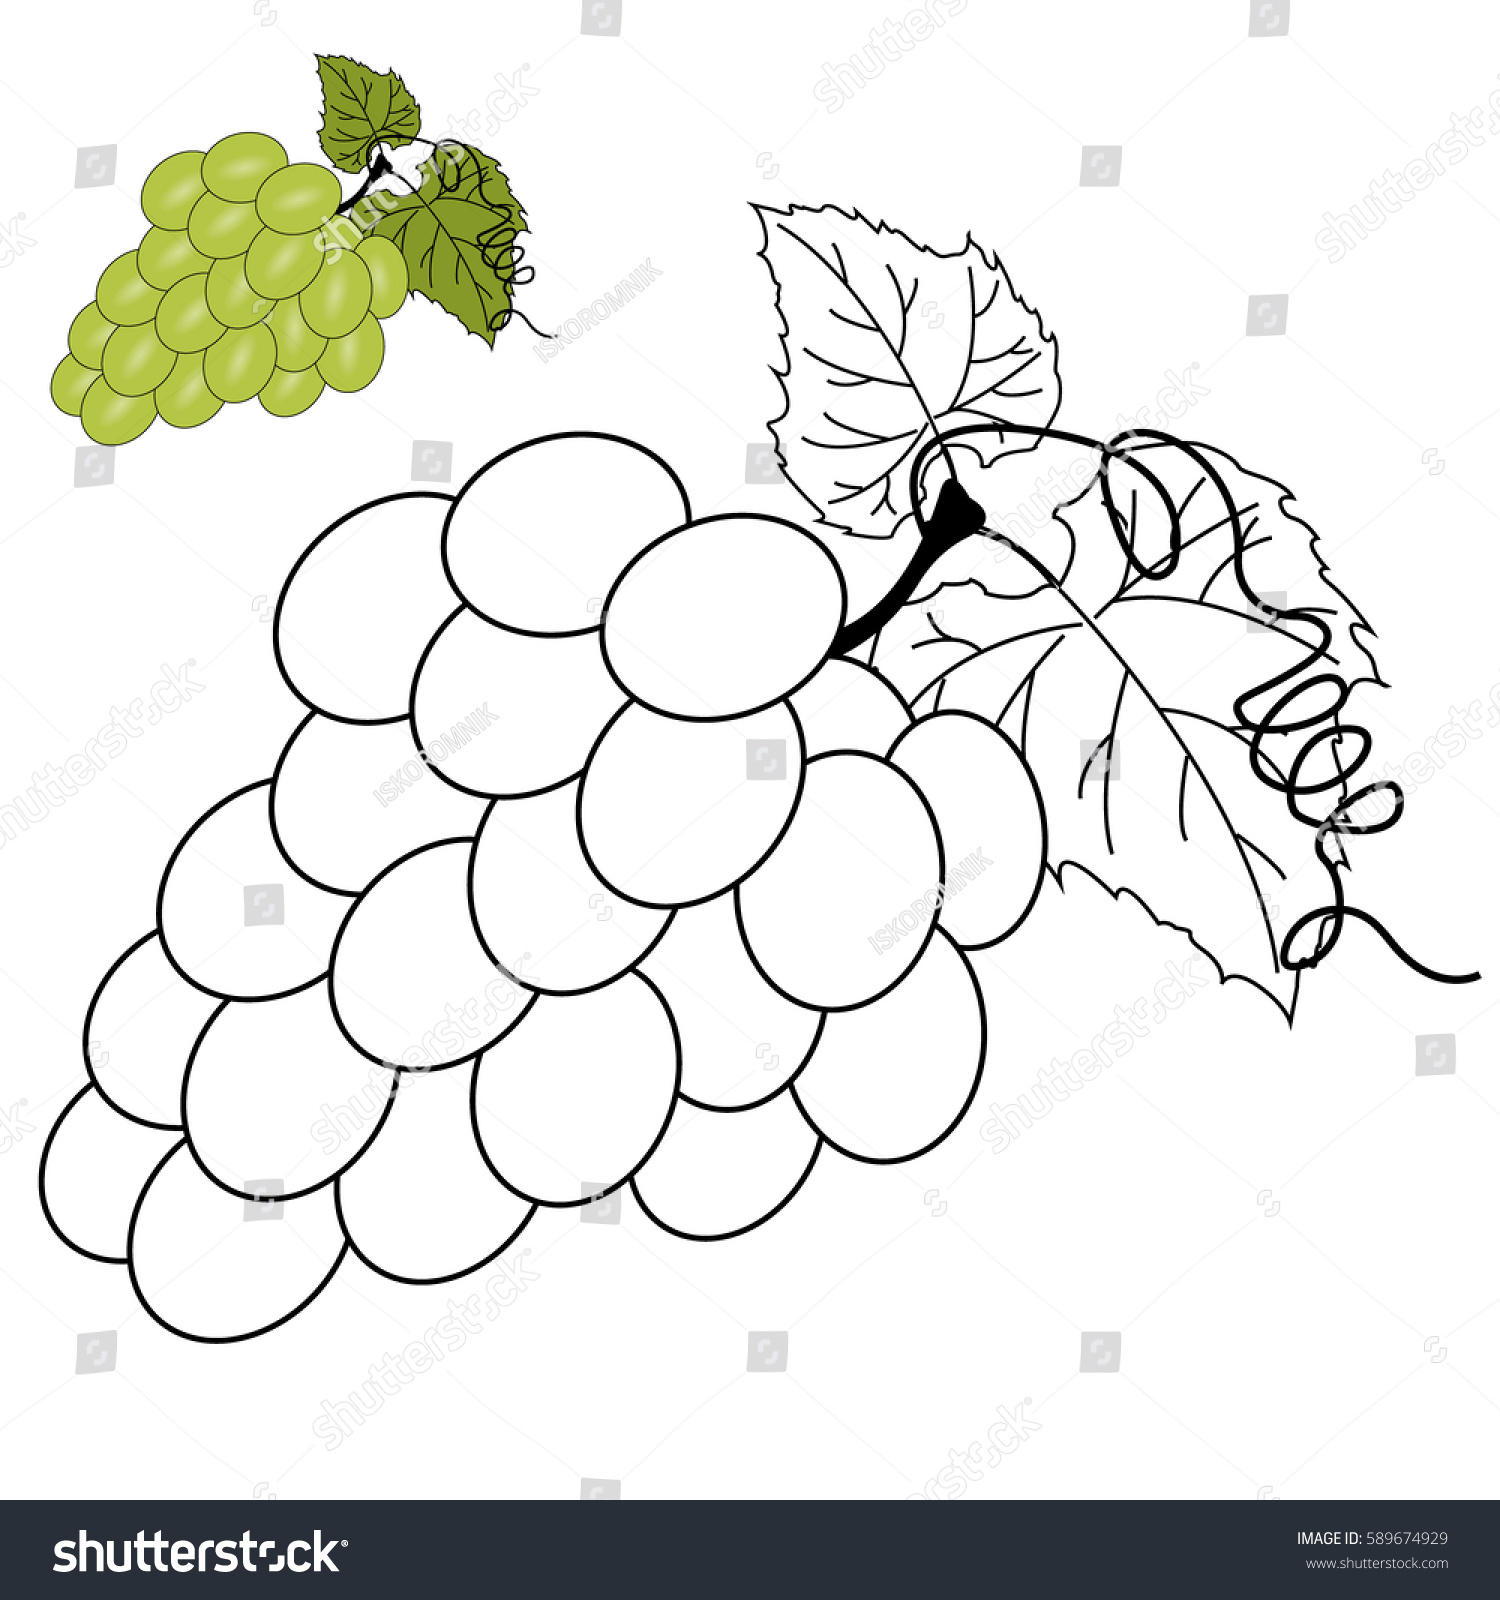 Vector Coloring Page Children Grapes Stock Vector 589674929